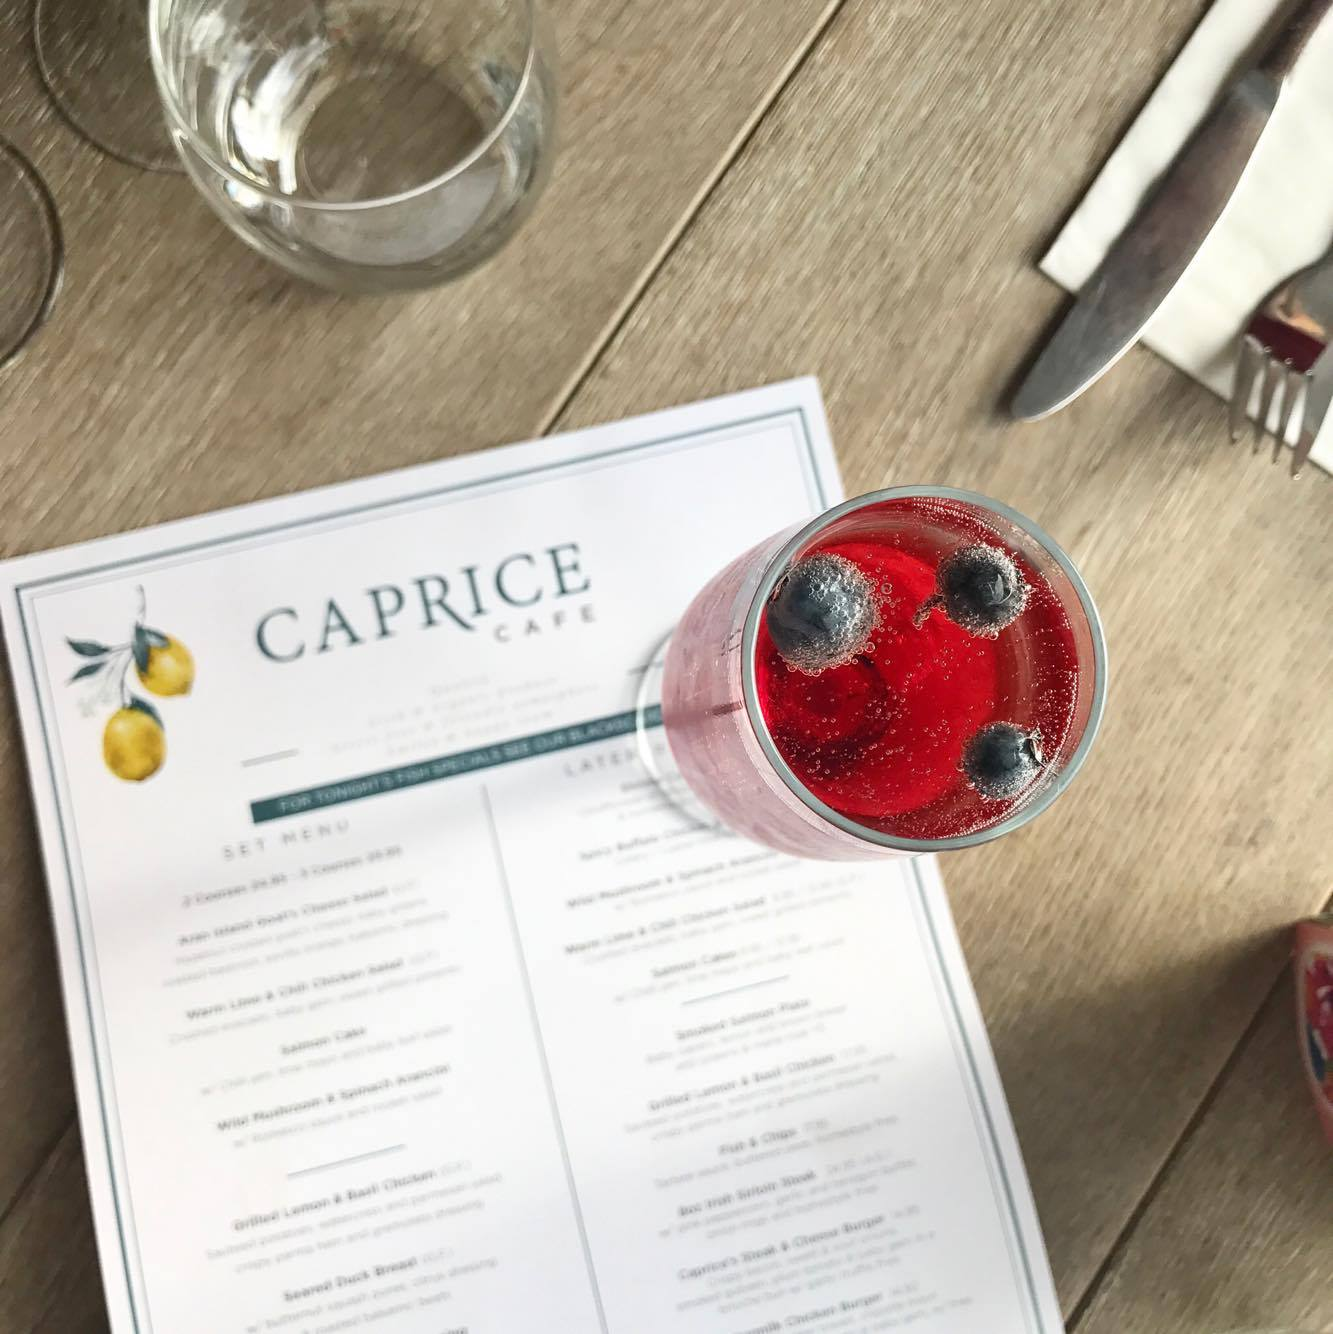 Caprice Cafe Galway prosecco